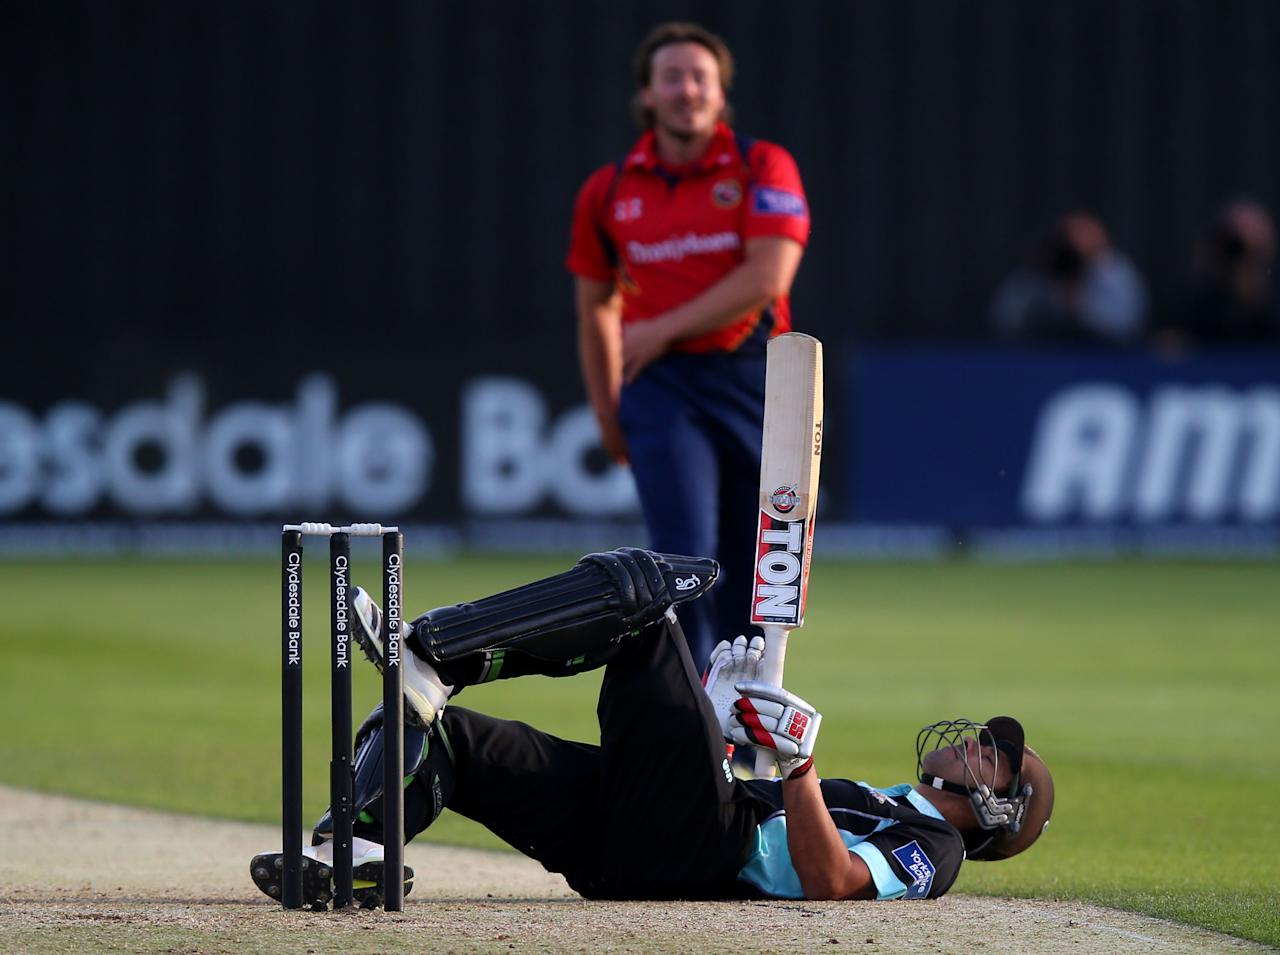 CHELMSFORD, ENGLAND - JUNE 03:  Vikram Solanki of Surrey is knocked to the ground off a delivery from Graham Napier of Essex during the Yorkshire Bank 40 between Essex and Surrey on June 3, 2013 in Chelmsford, England.  (Photo by Clive Rose/Getty Images)